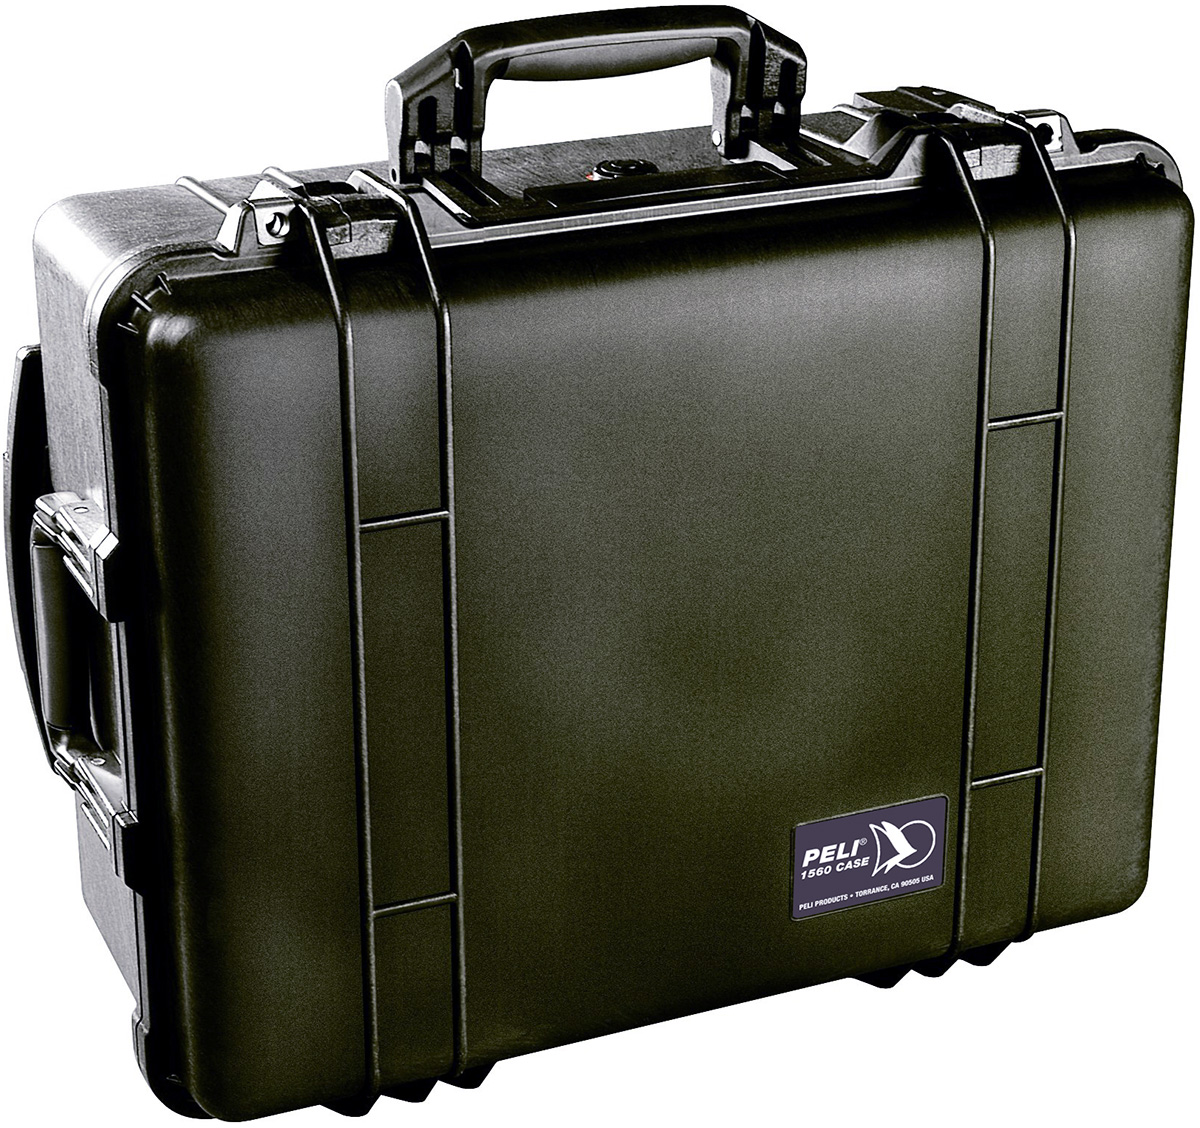 peli pelican products 1560 rolling travel hard case pelicases